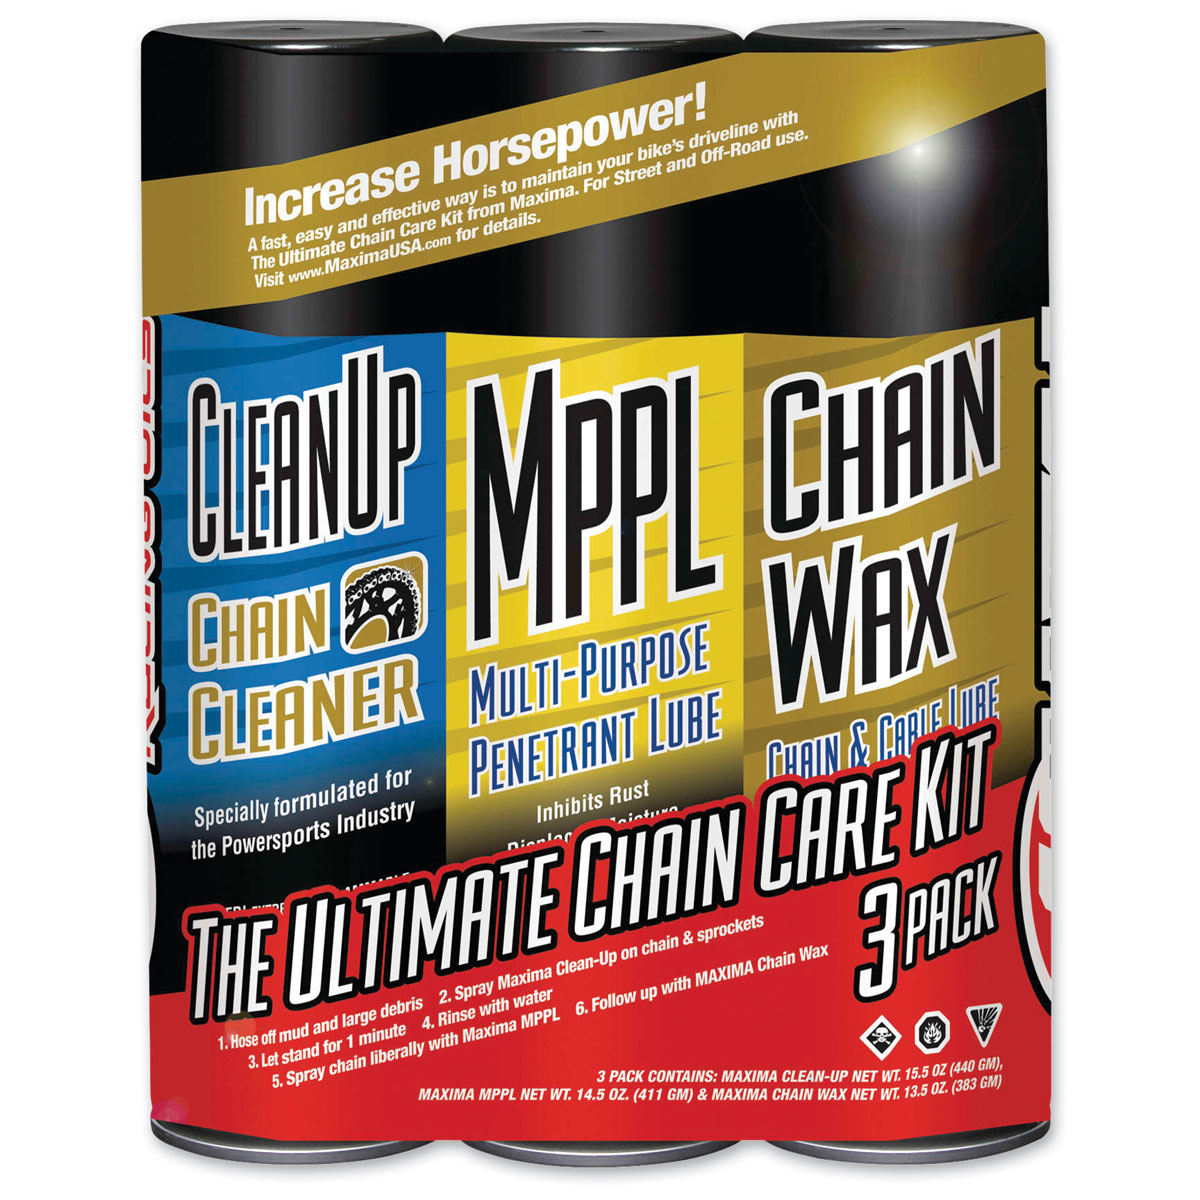 Maxima Chain Wax Ultimate Chain Care Kit